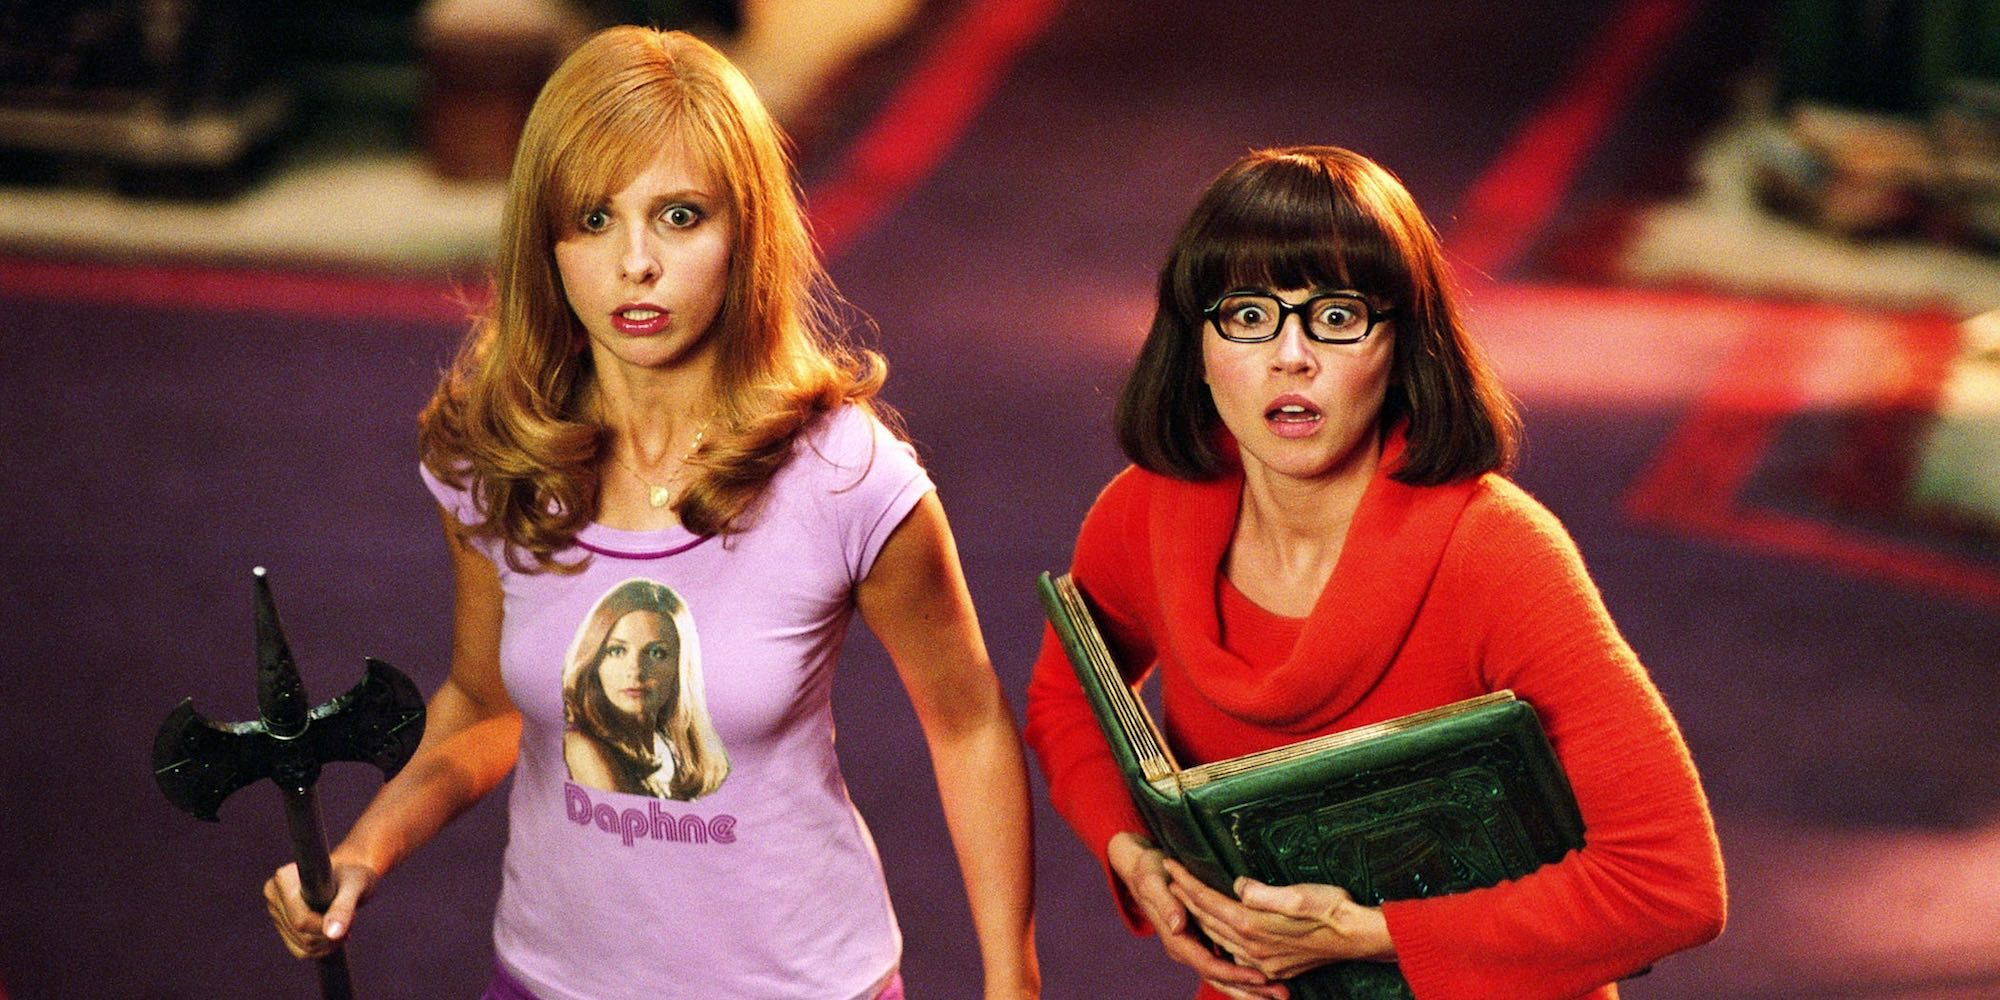 Velma Was Gay In Scooby Doo Movie But Wb Made James Gunn Change It